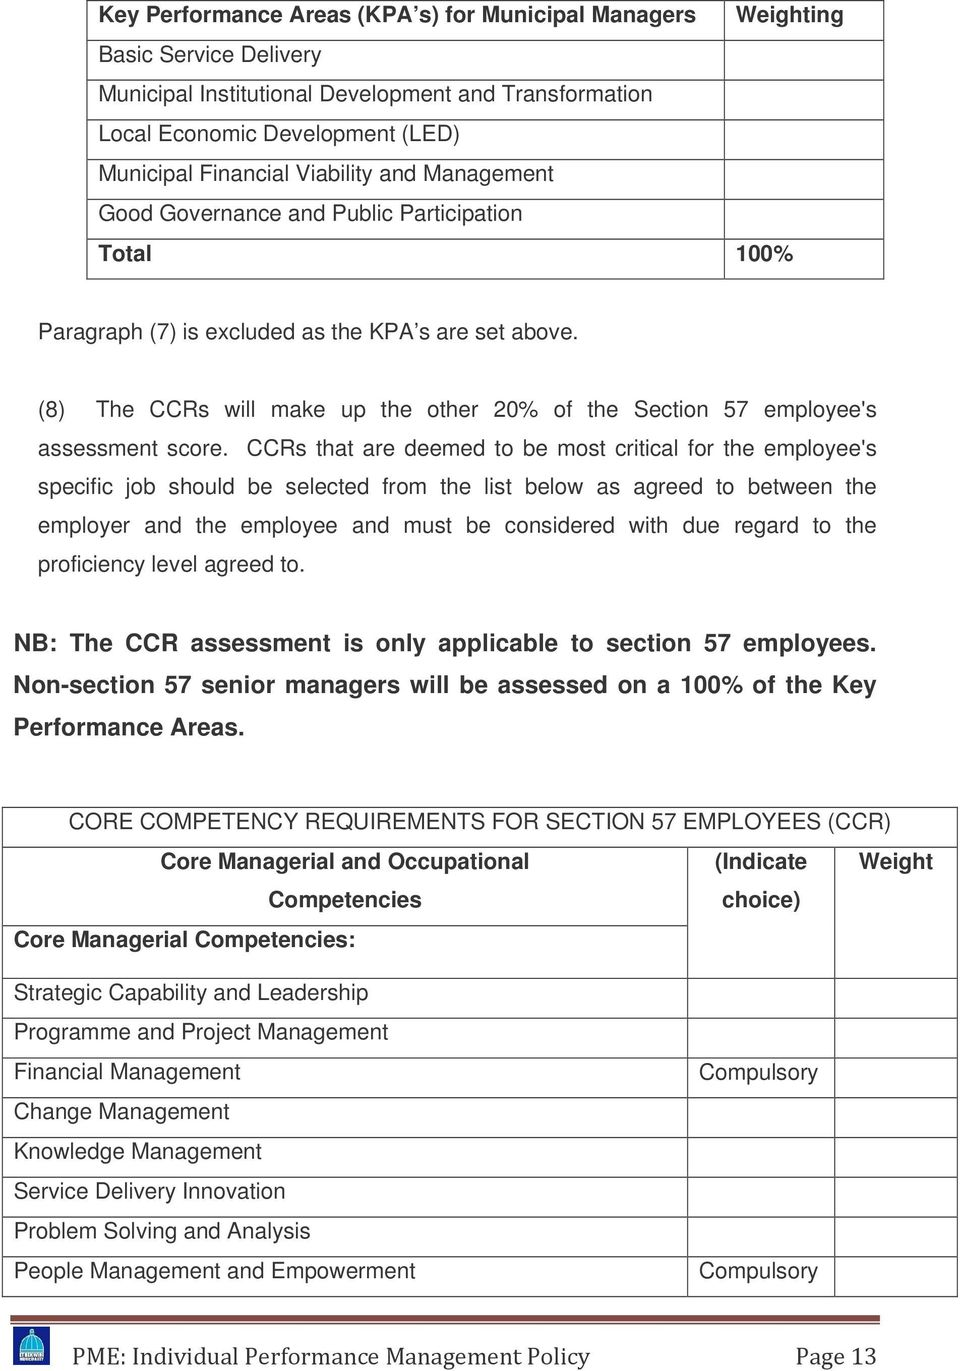 (8) The CCRs will make up the other 20% of the Section 57 employee's assessment score.